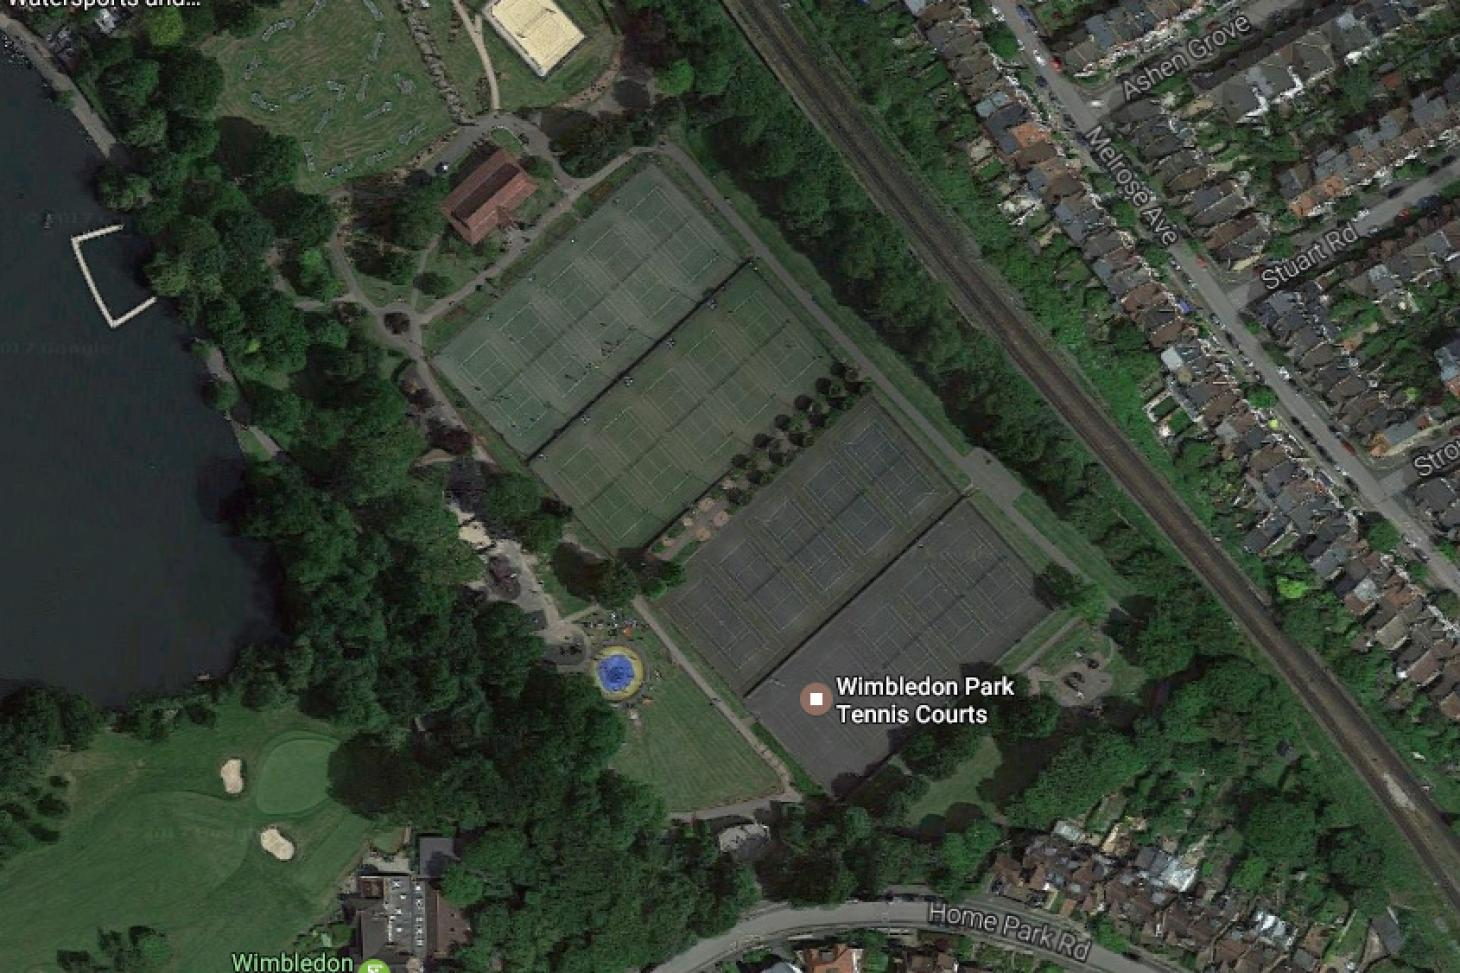 Wimbledon Park Outdoor | Astroturf tennis court